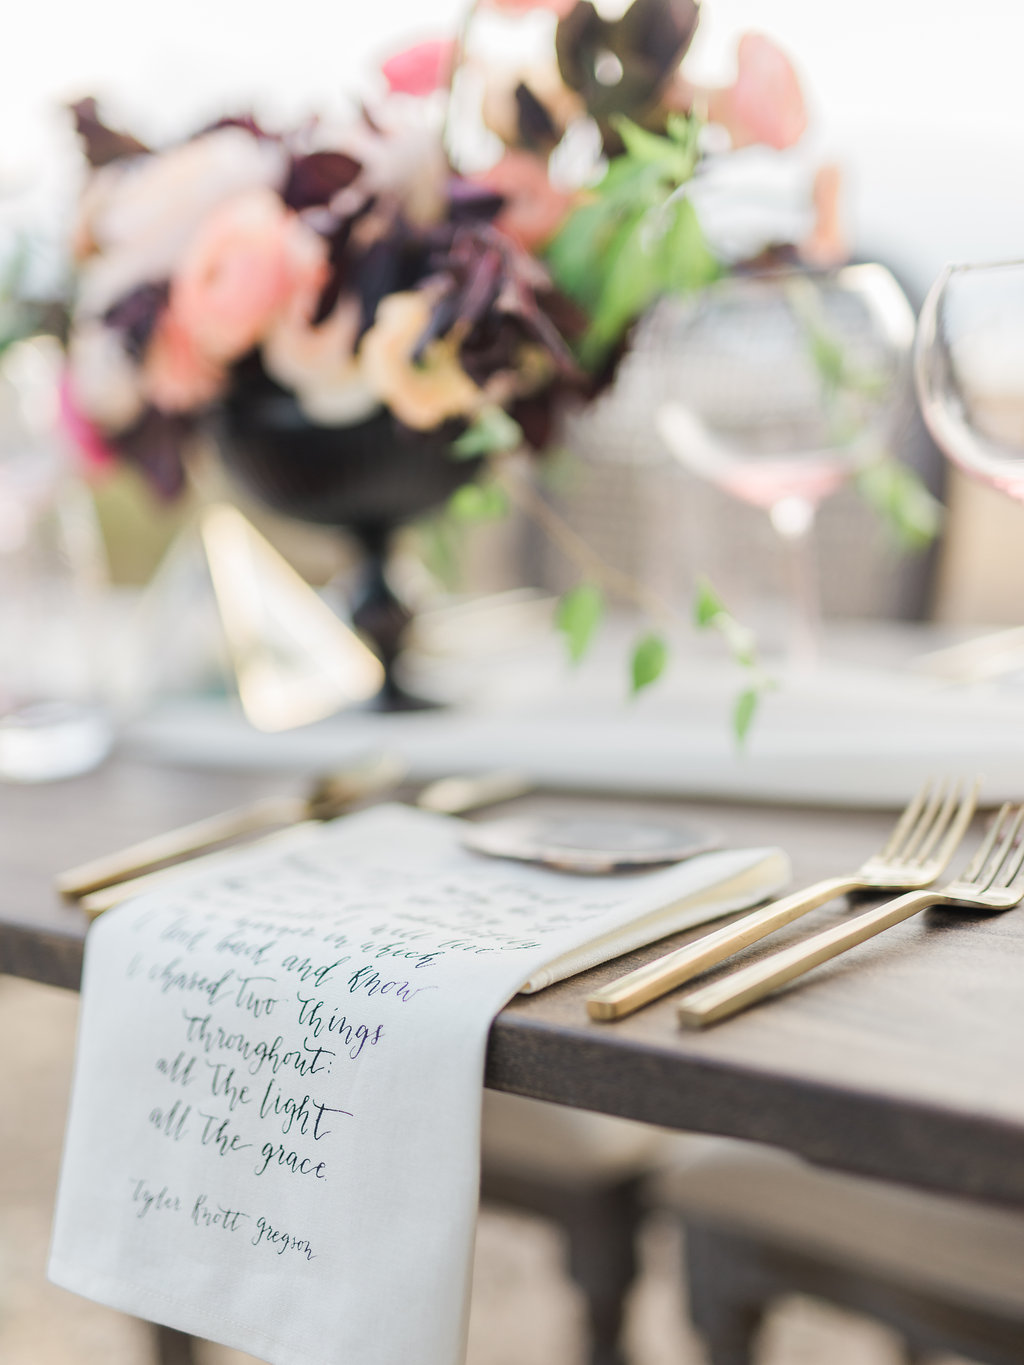 Big Bear Lakeside California Wedding | Shotgunning for Love Letters - Table Setting with Calligraphy Napkins